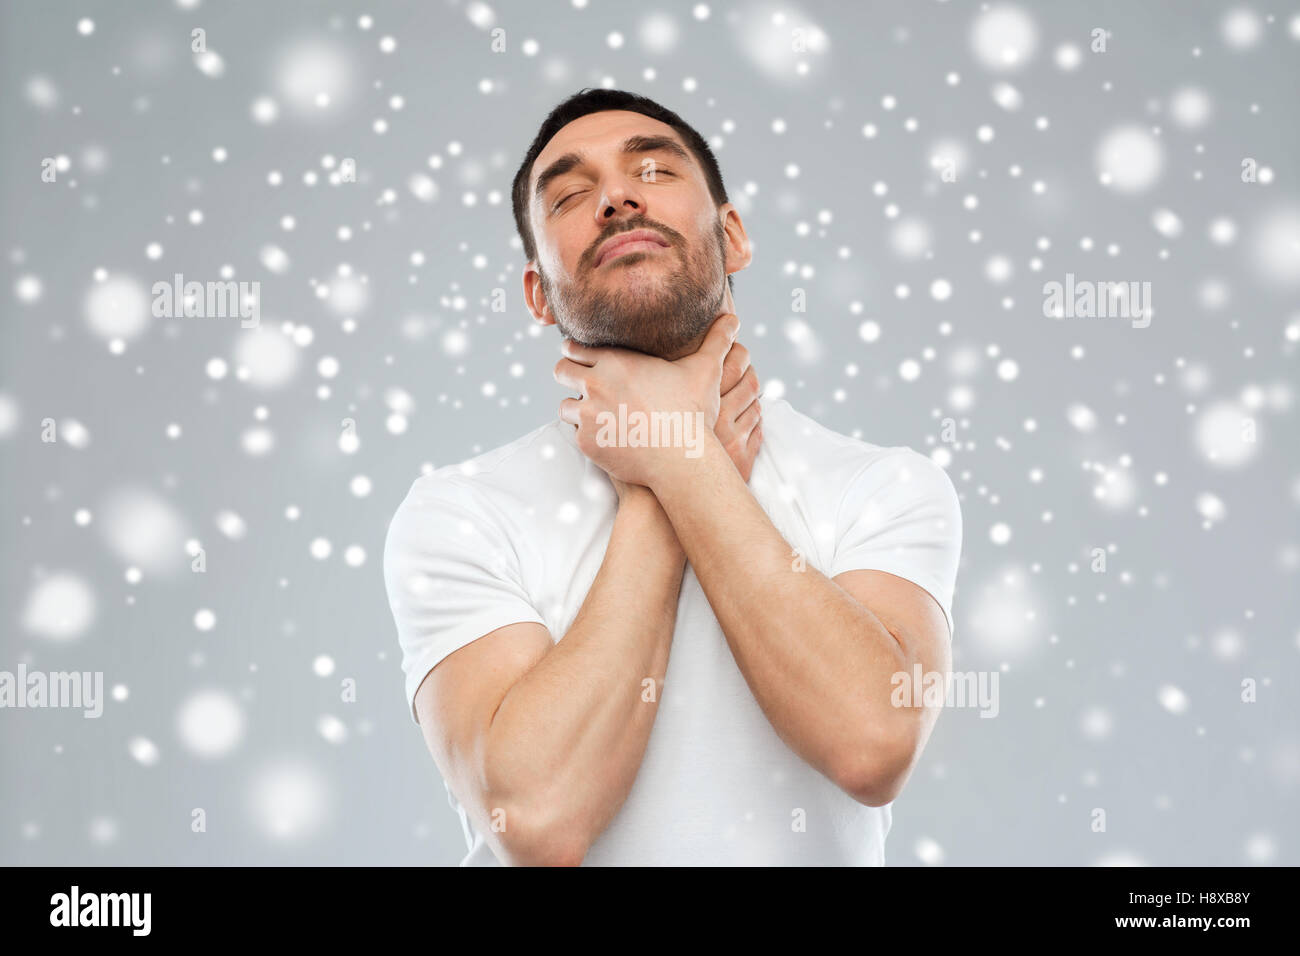 young man choking himself over snow background - Stock Image